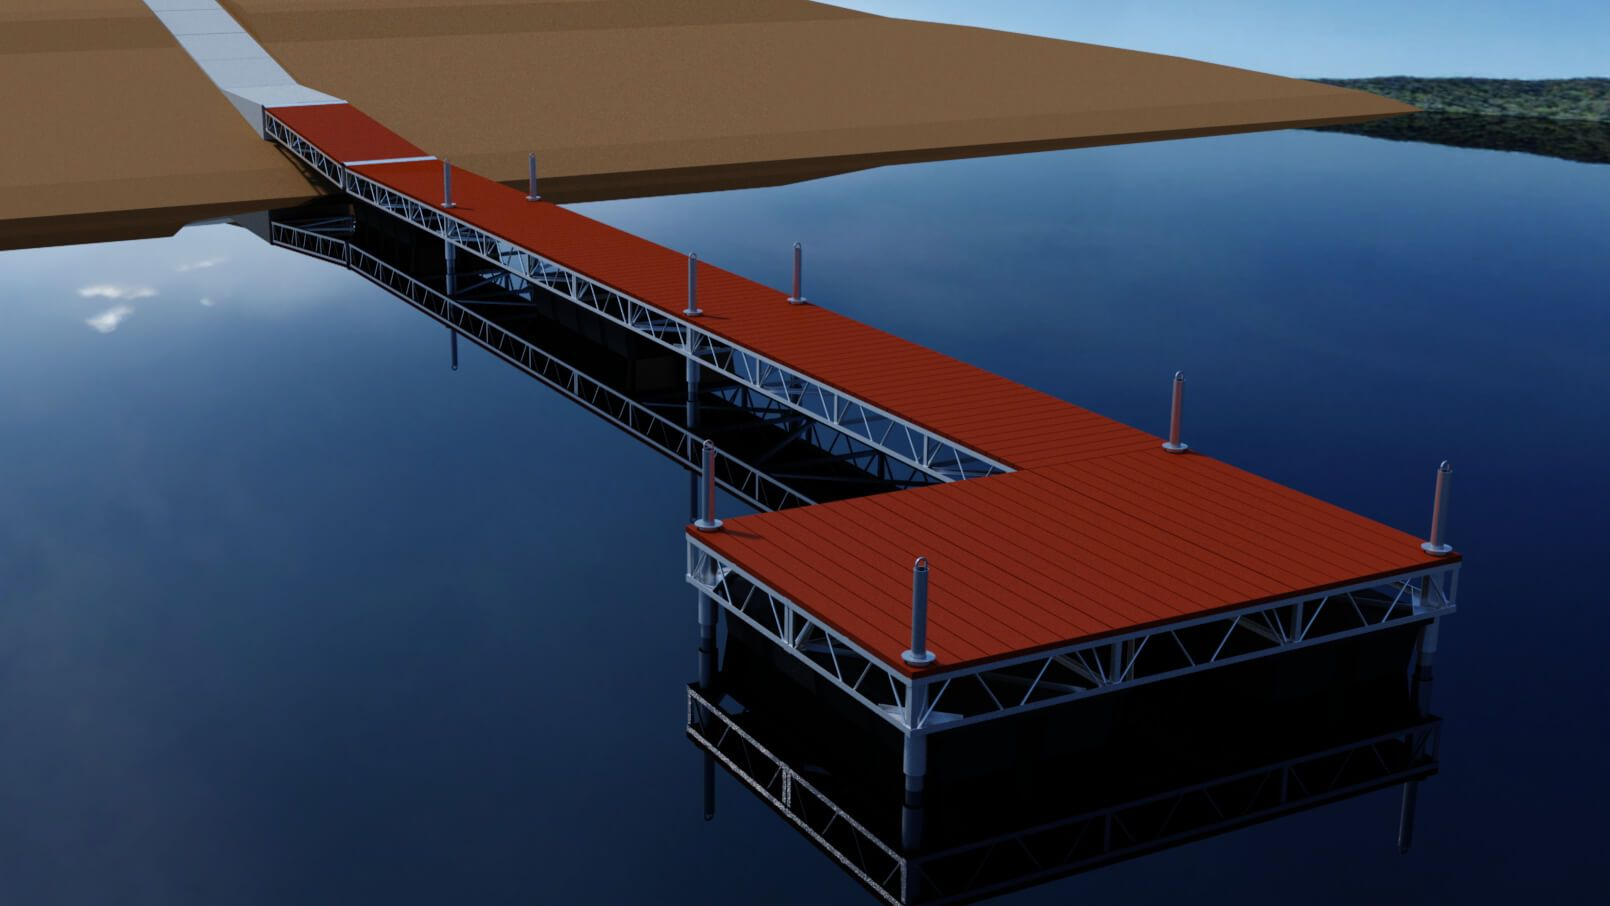 Flotation Dock Rendering